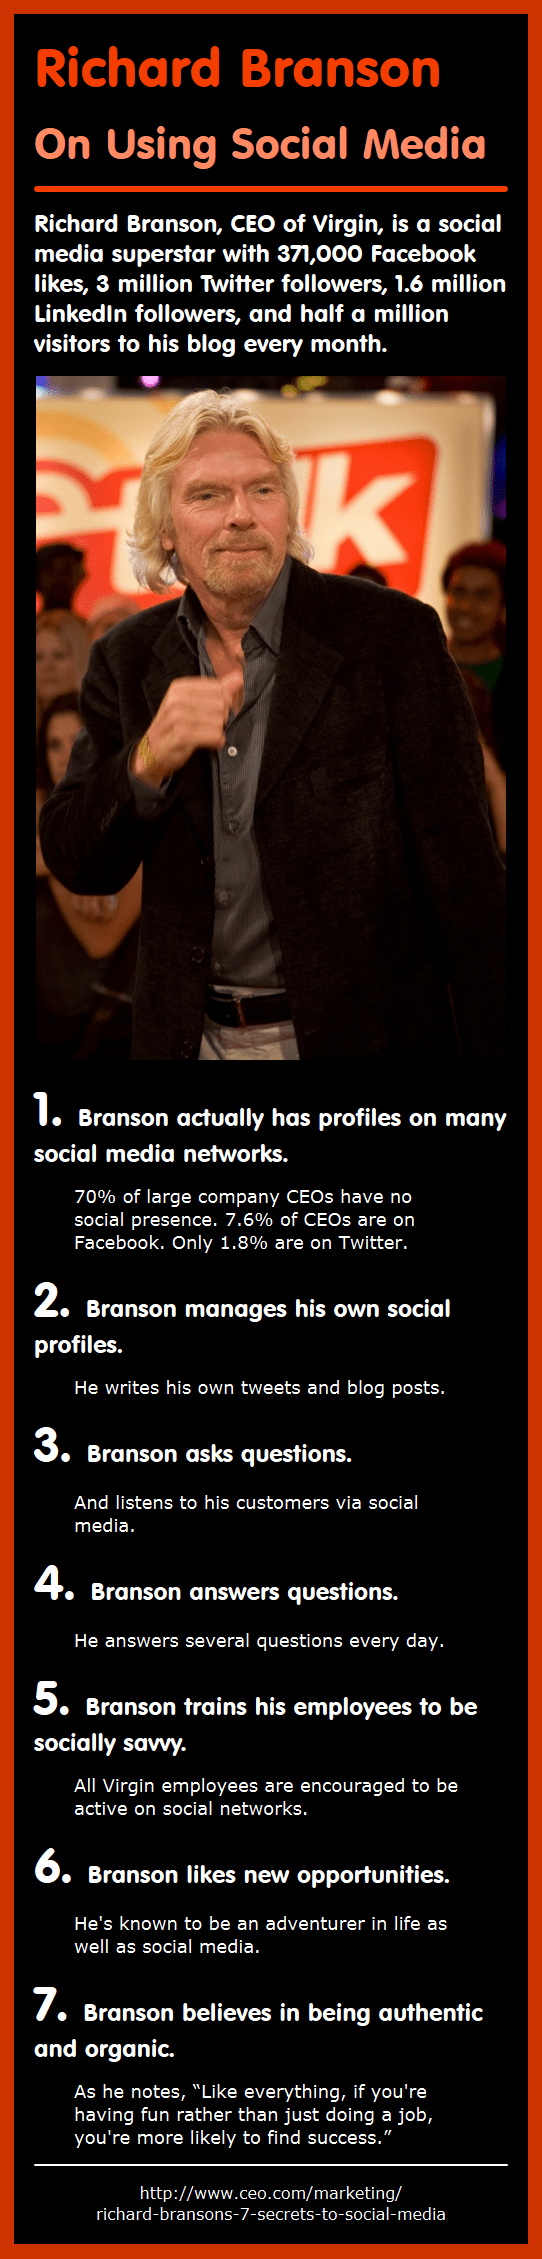 Richard Branson on Using Social Media